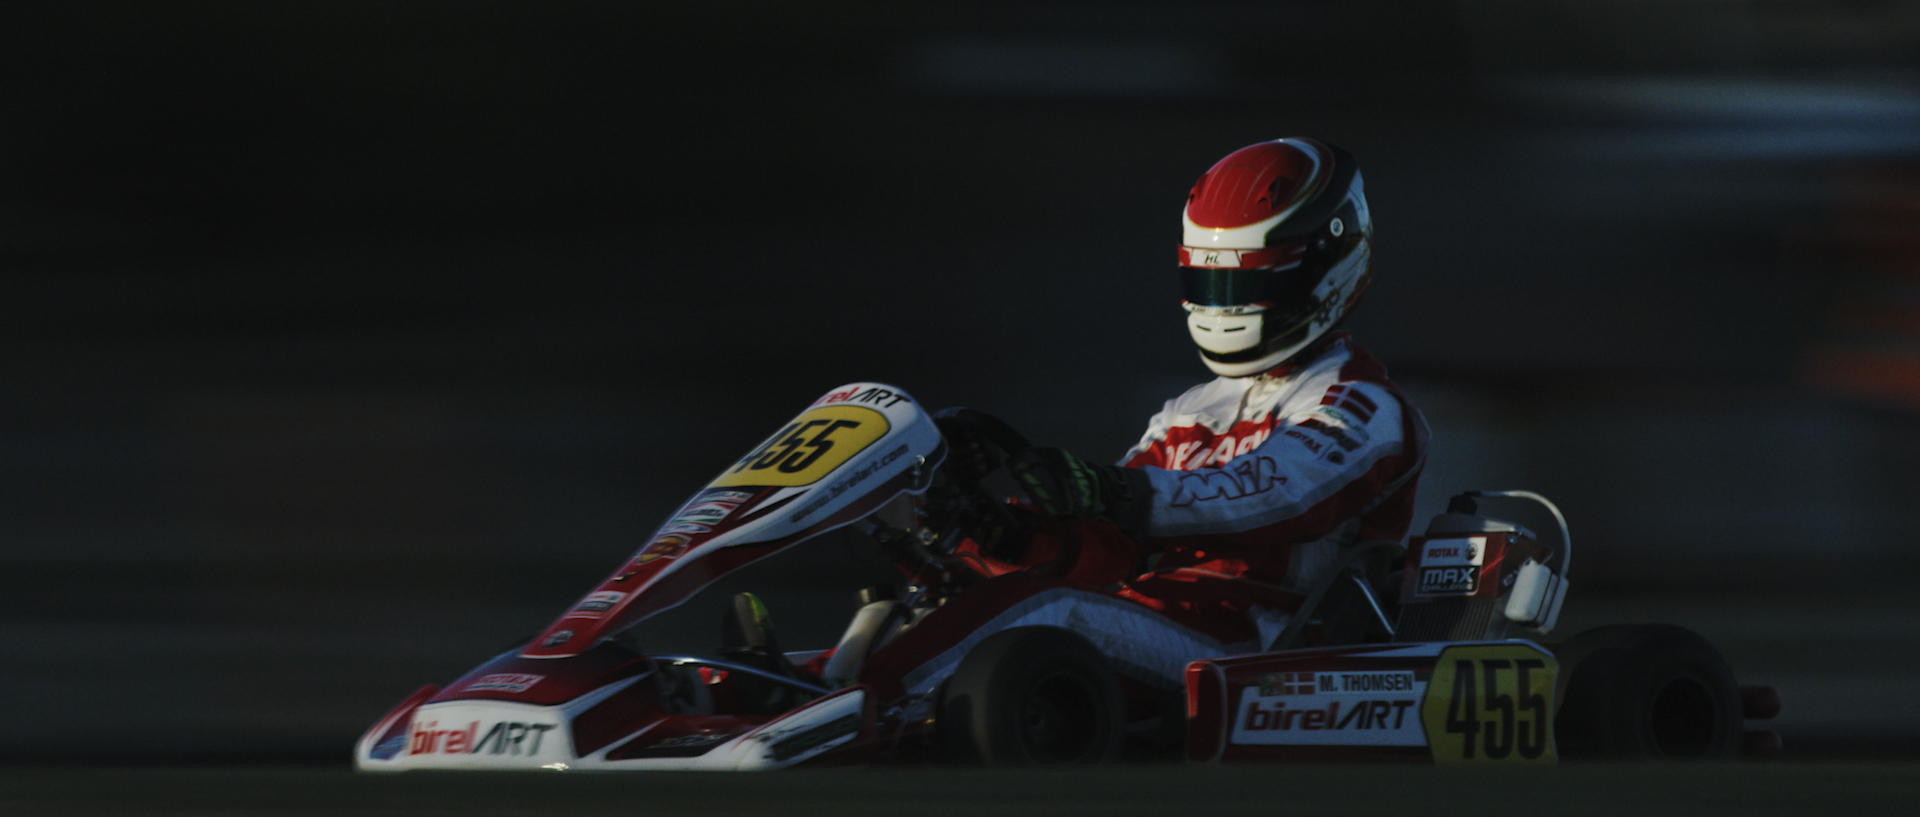 Kart Sports Action Clip Film Cinematic RED camera ROTAX